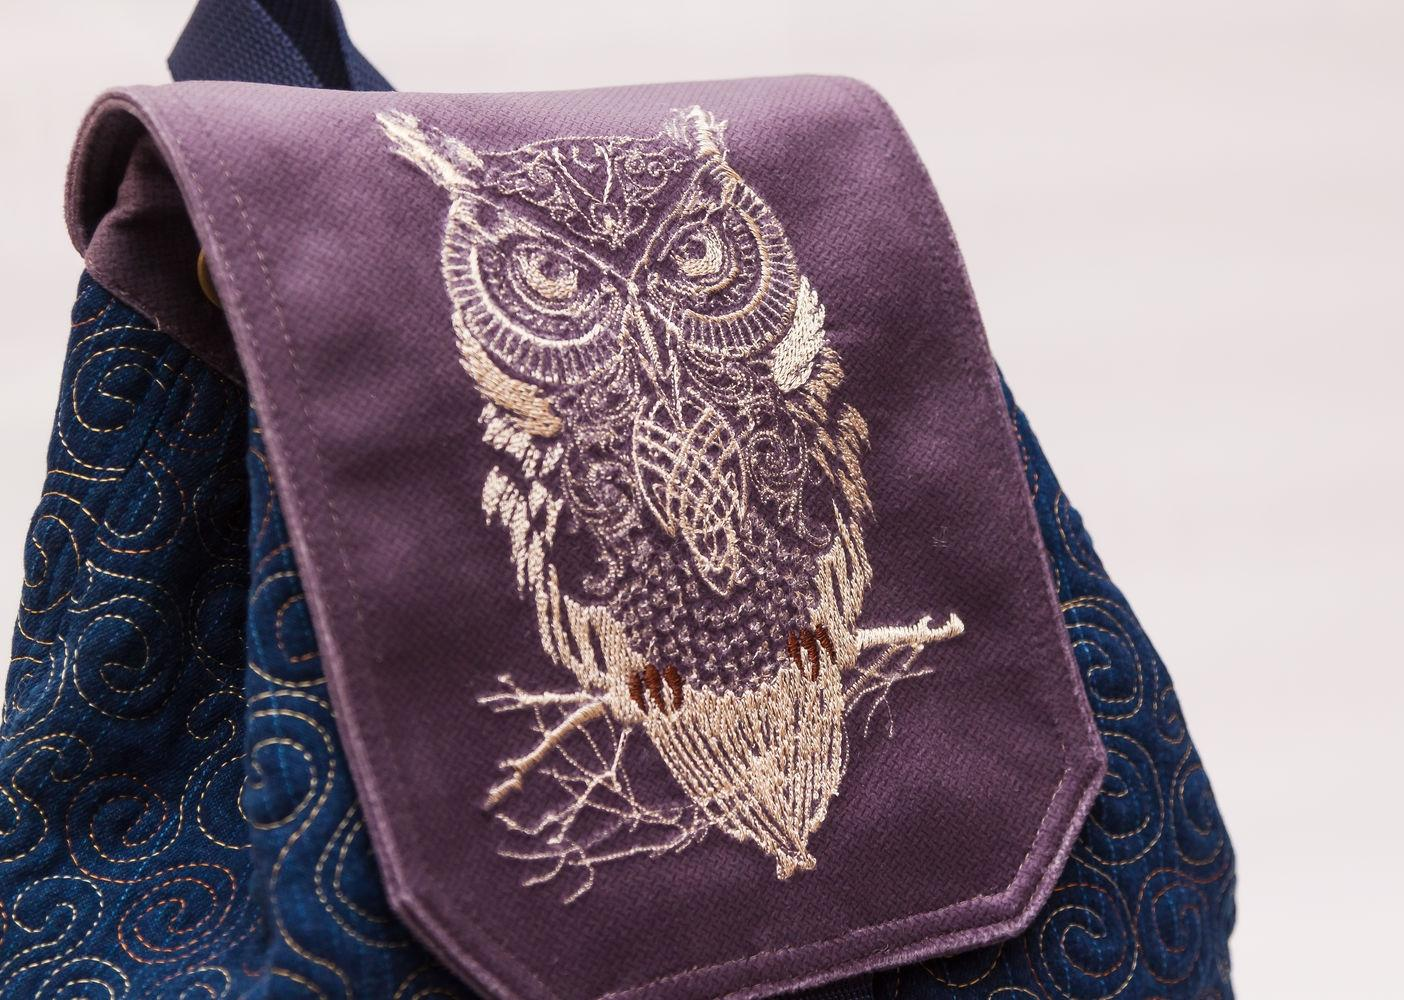 Embroireded backpack with tribal owl design